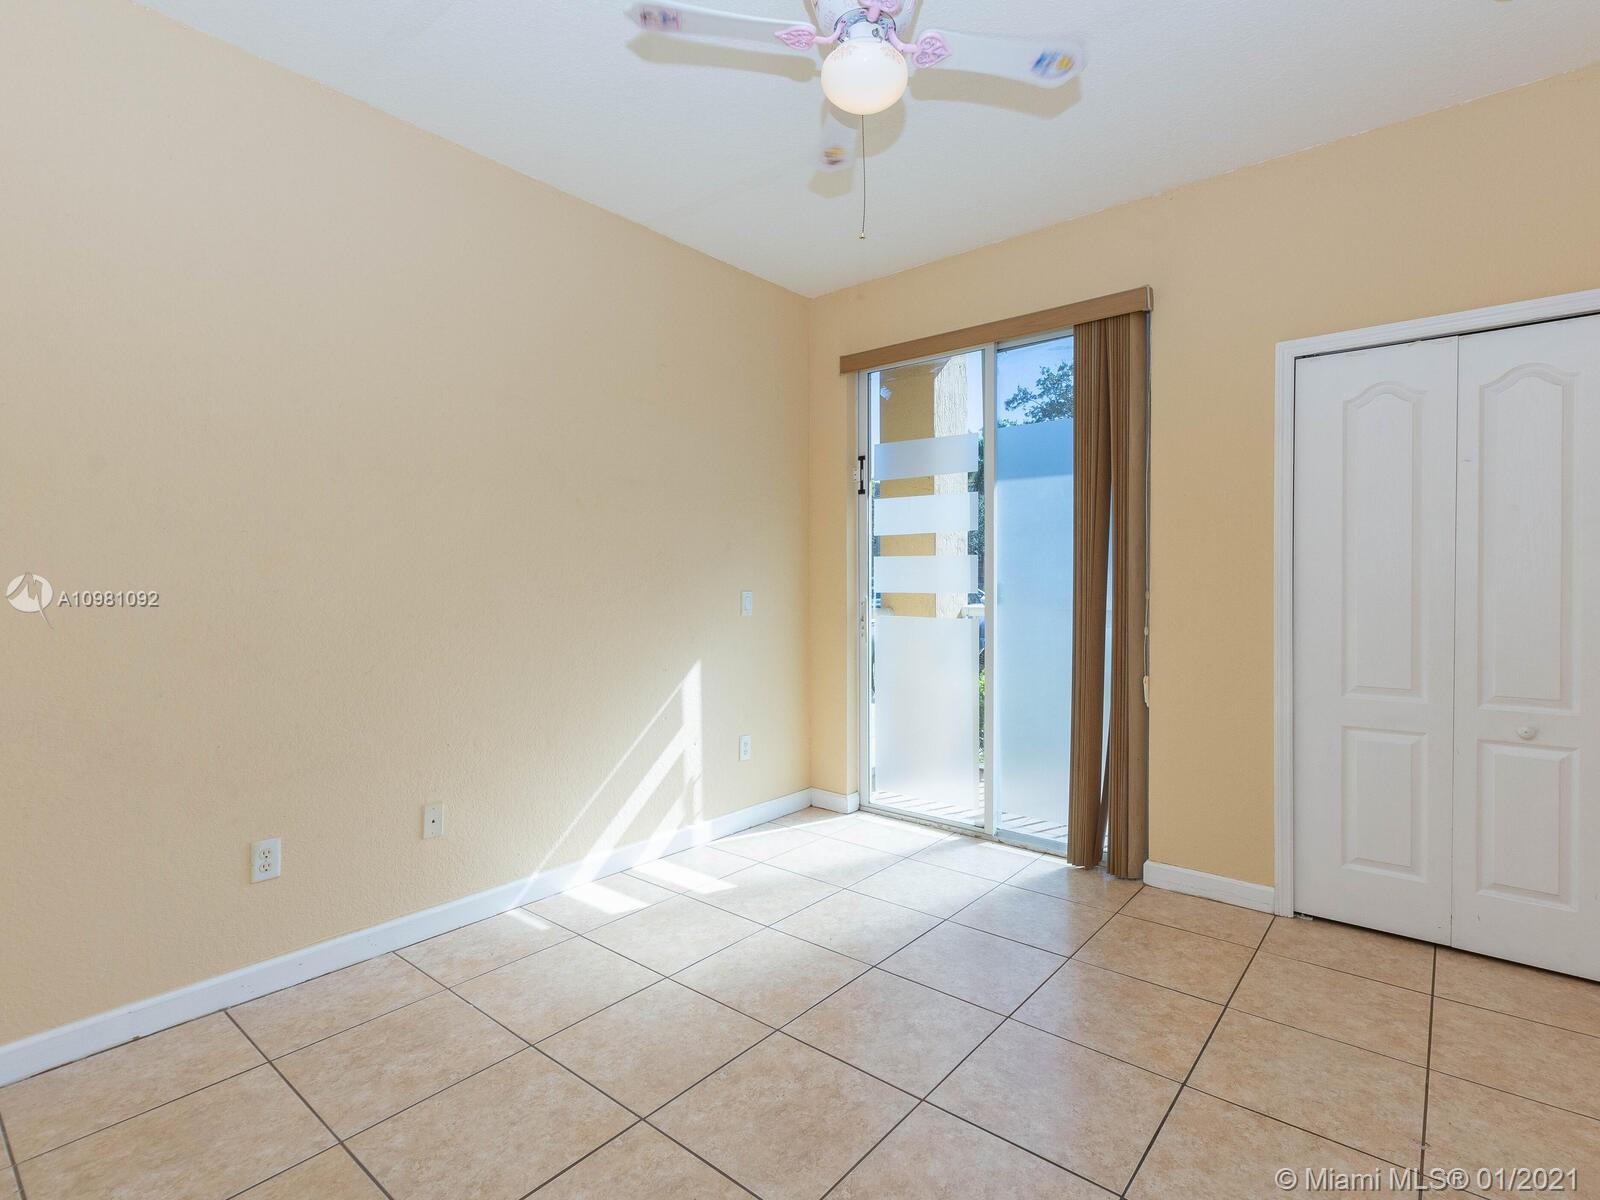 4351 SW 160th Ave # 102, Miramar, Florida 33027, 3 Bedrooms Bedrooms, ,2 BathroomsBathrooms,Residential,For Sale,4351 SW 160th Ave # 102,A10981092